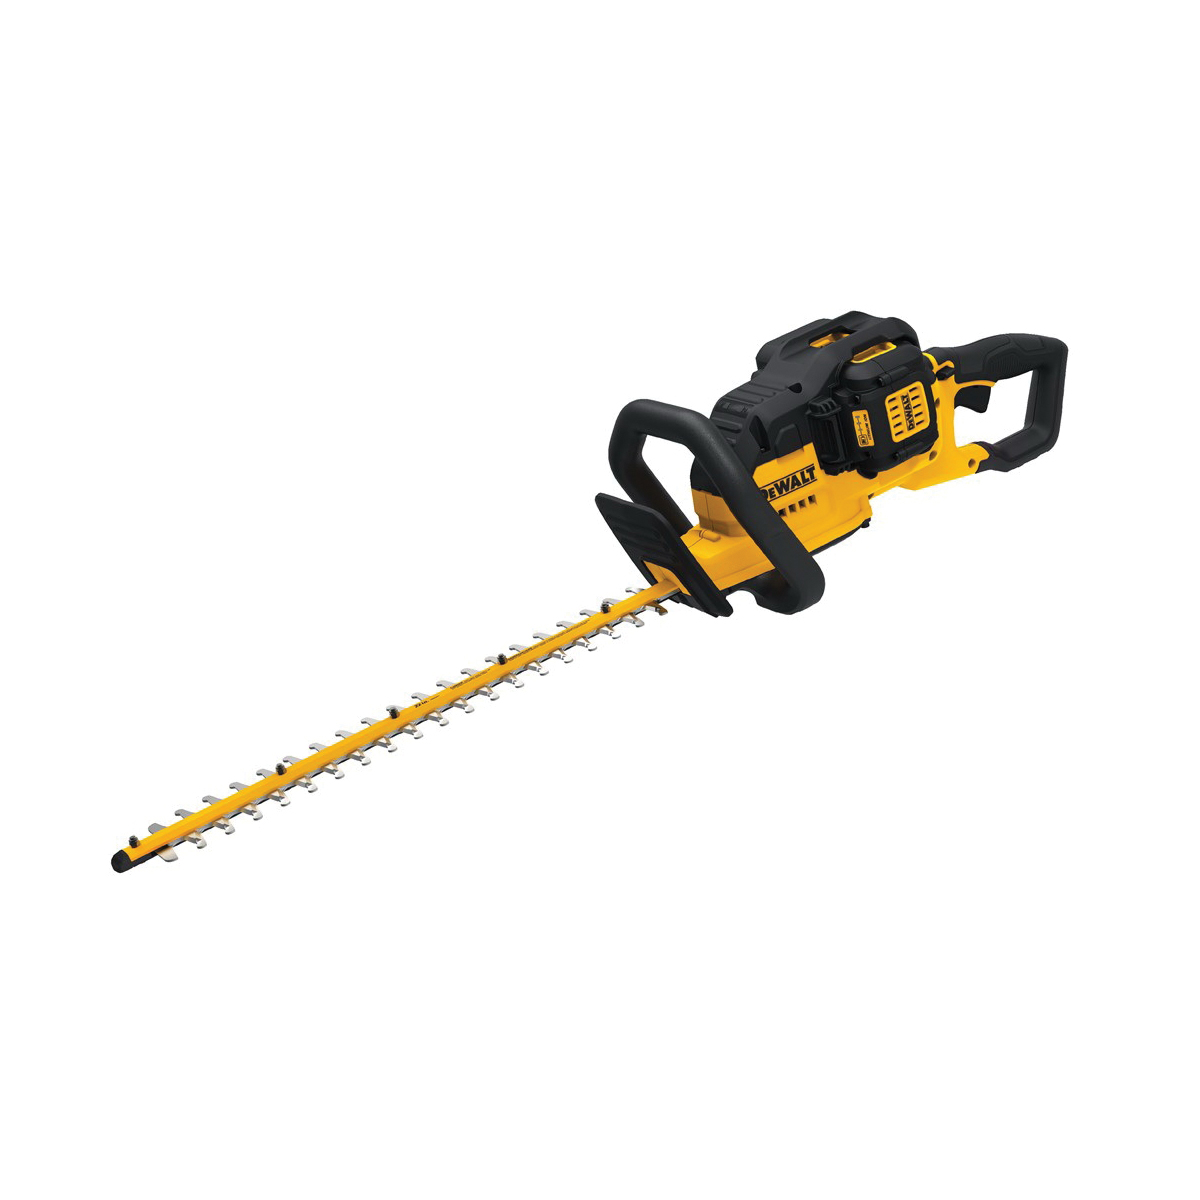 DeWALT® MAX XR® DCHT860M1 1-Speed Cordless Hedge Trimmer, 3/4 in Cutting, Double Sided Dual Action Blade, 40 V, Lithium-Ion Battery, Plastic Housing